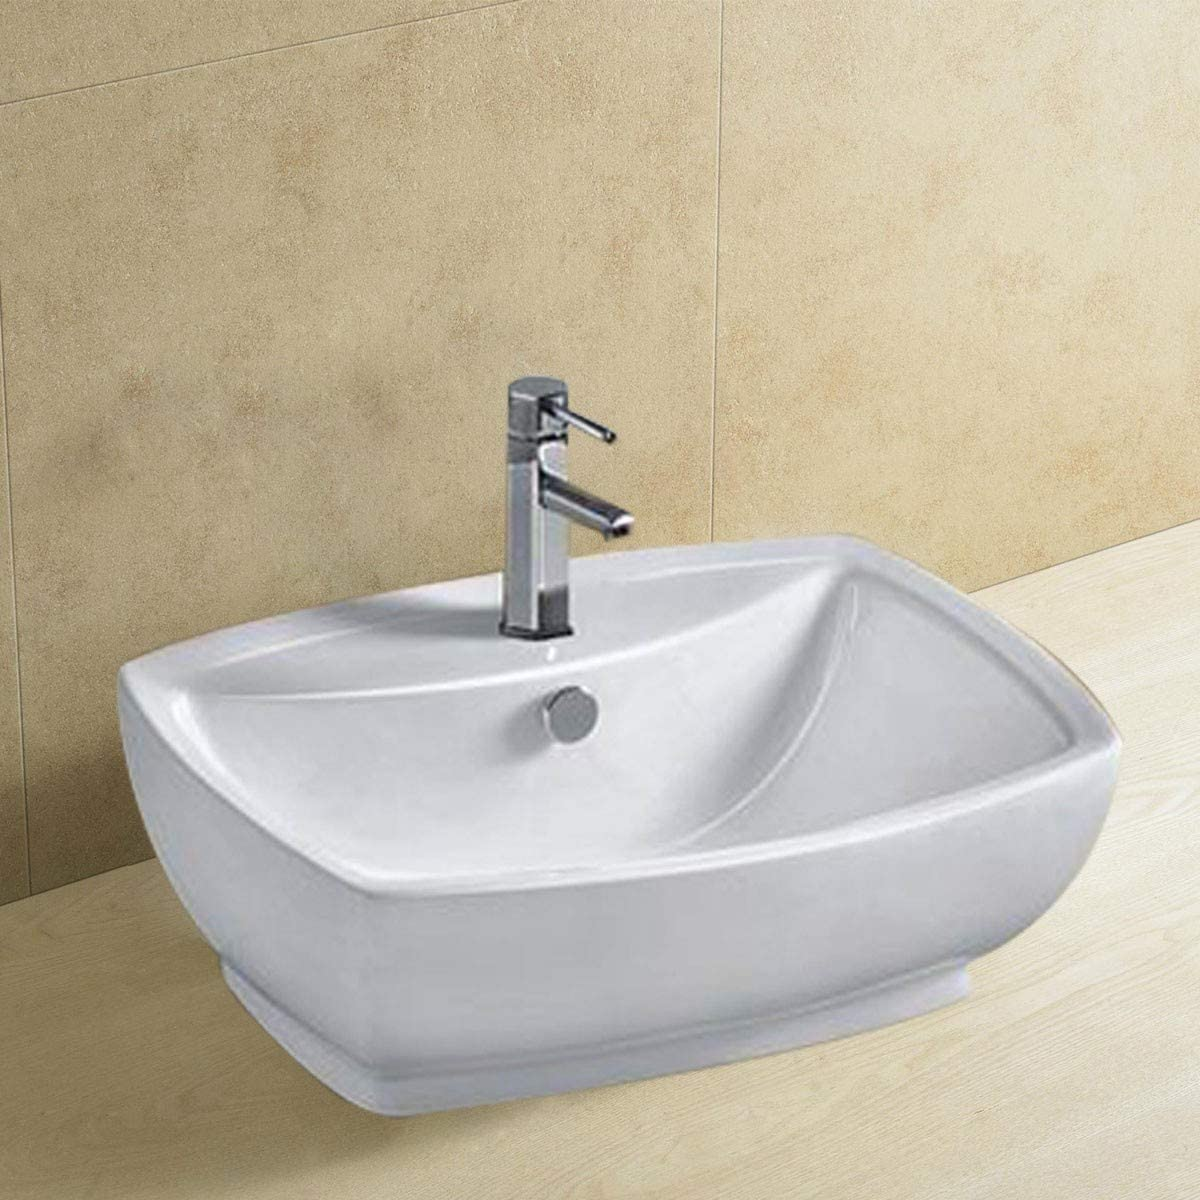 Bathroom Rectangular Porcelain Vessel Sink Above Counter White Countertop Bowl Sink for Lavatory Vanity Cabinet Contemporary Style E-CL-1090